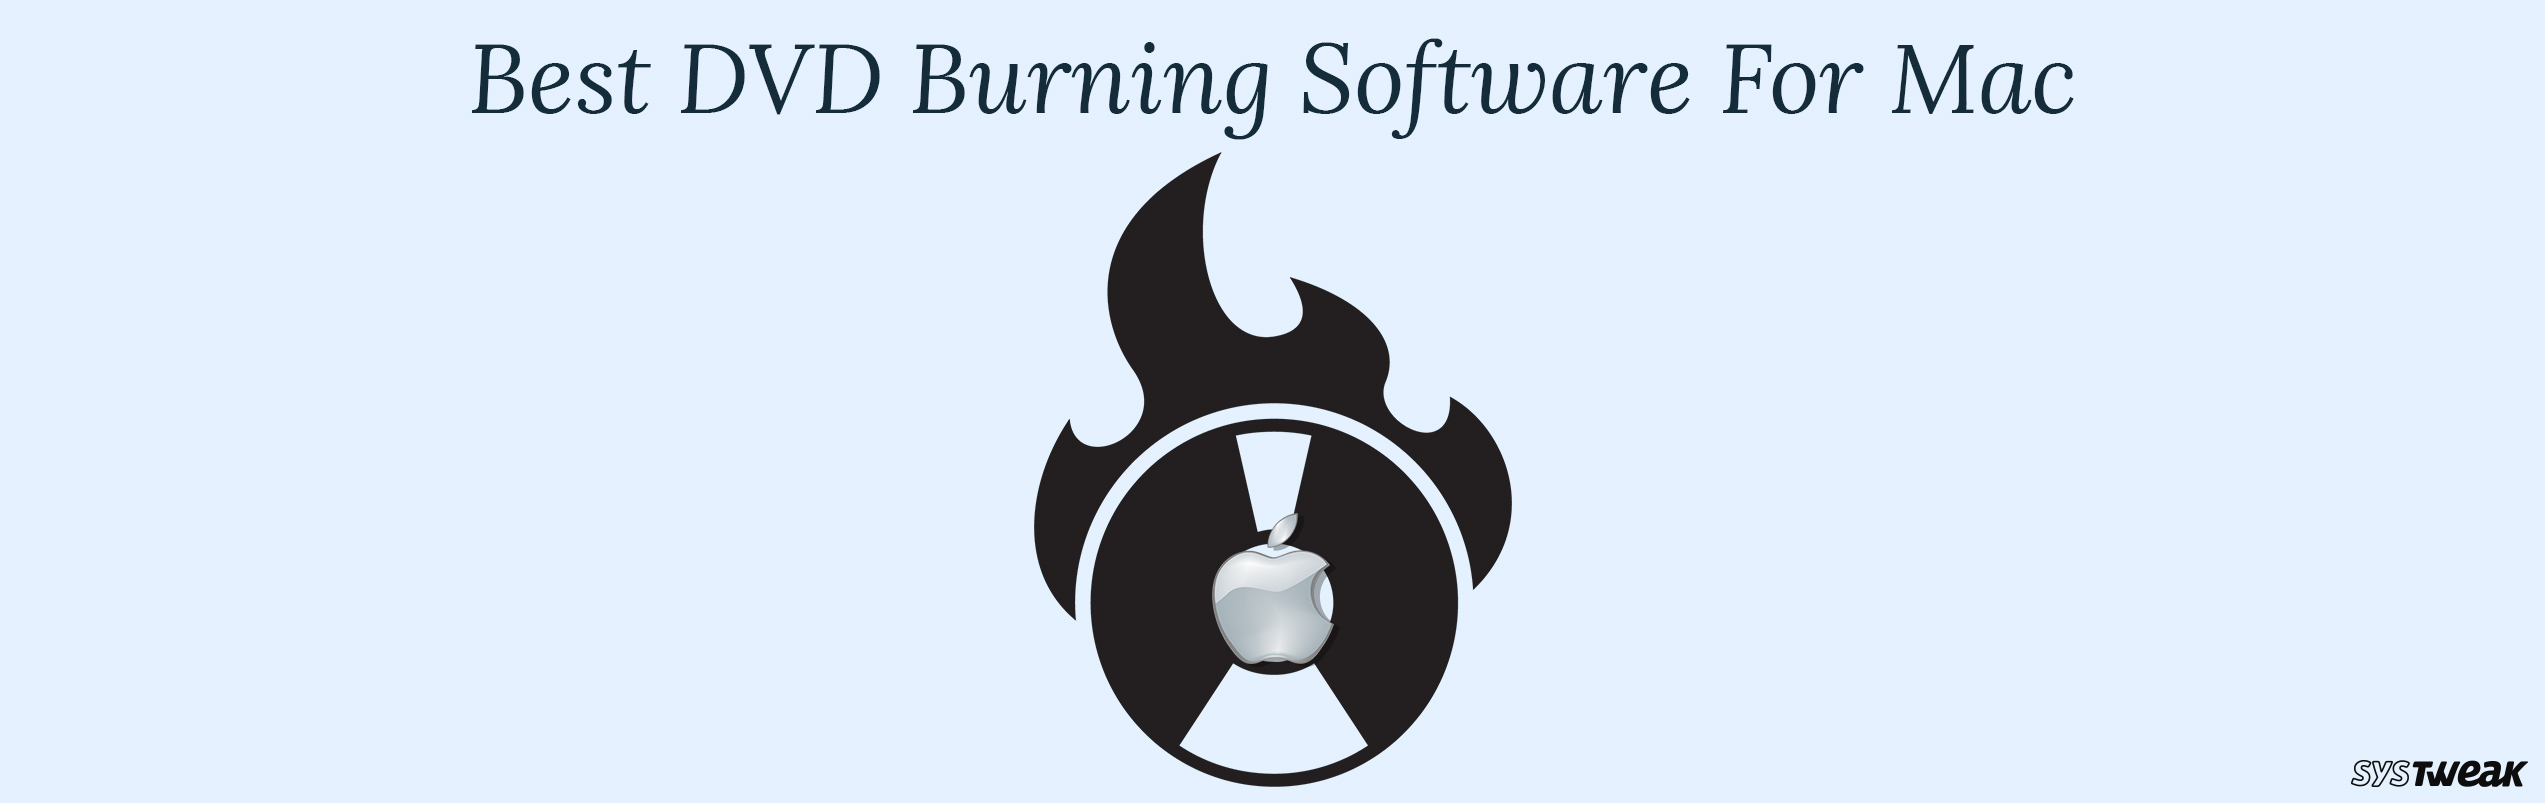 Best DVD Burning Software For Mac